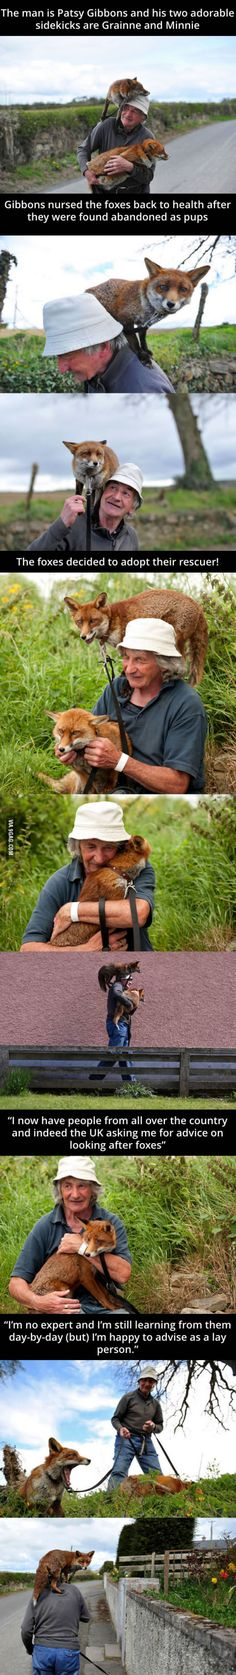 Man Rescued 3 foxes and now they won't leave his side